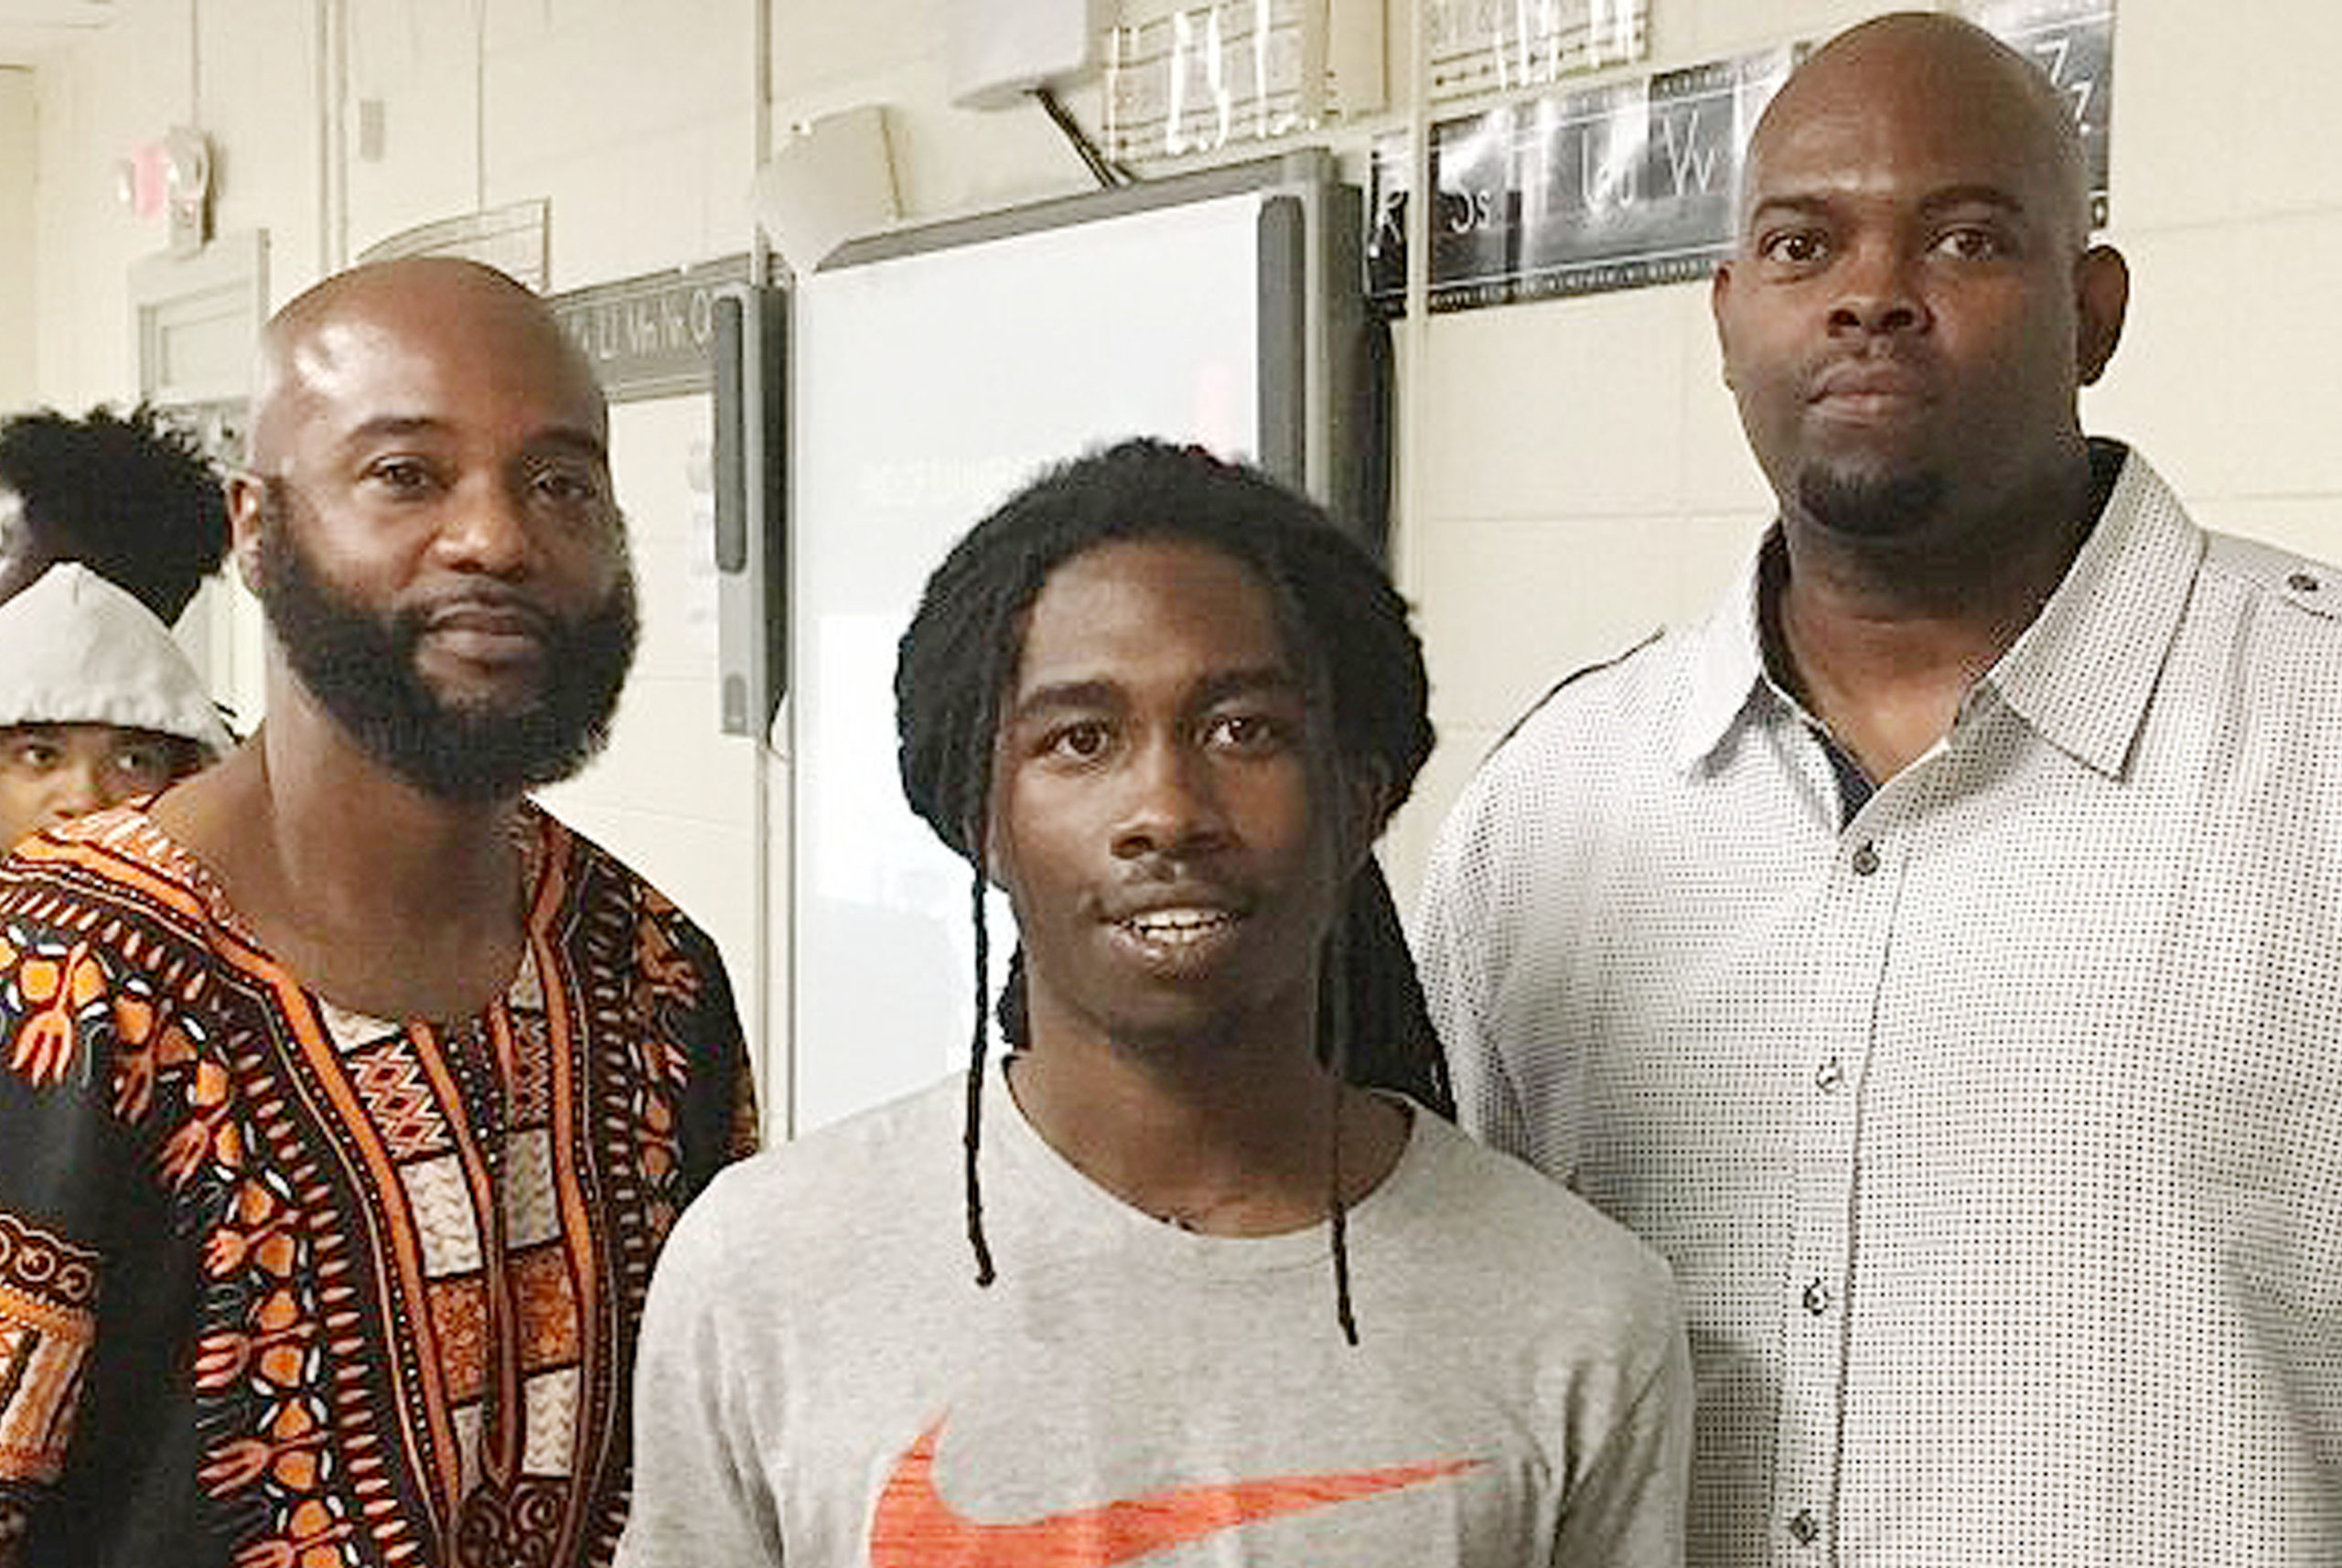 3 men standing together in a classroom